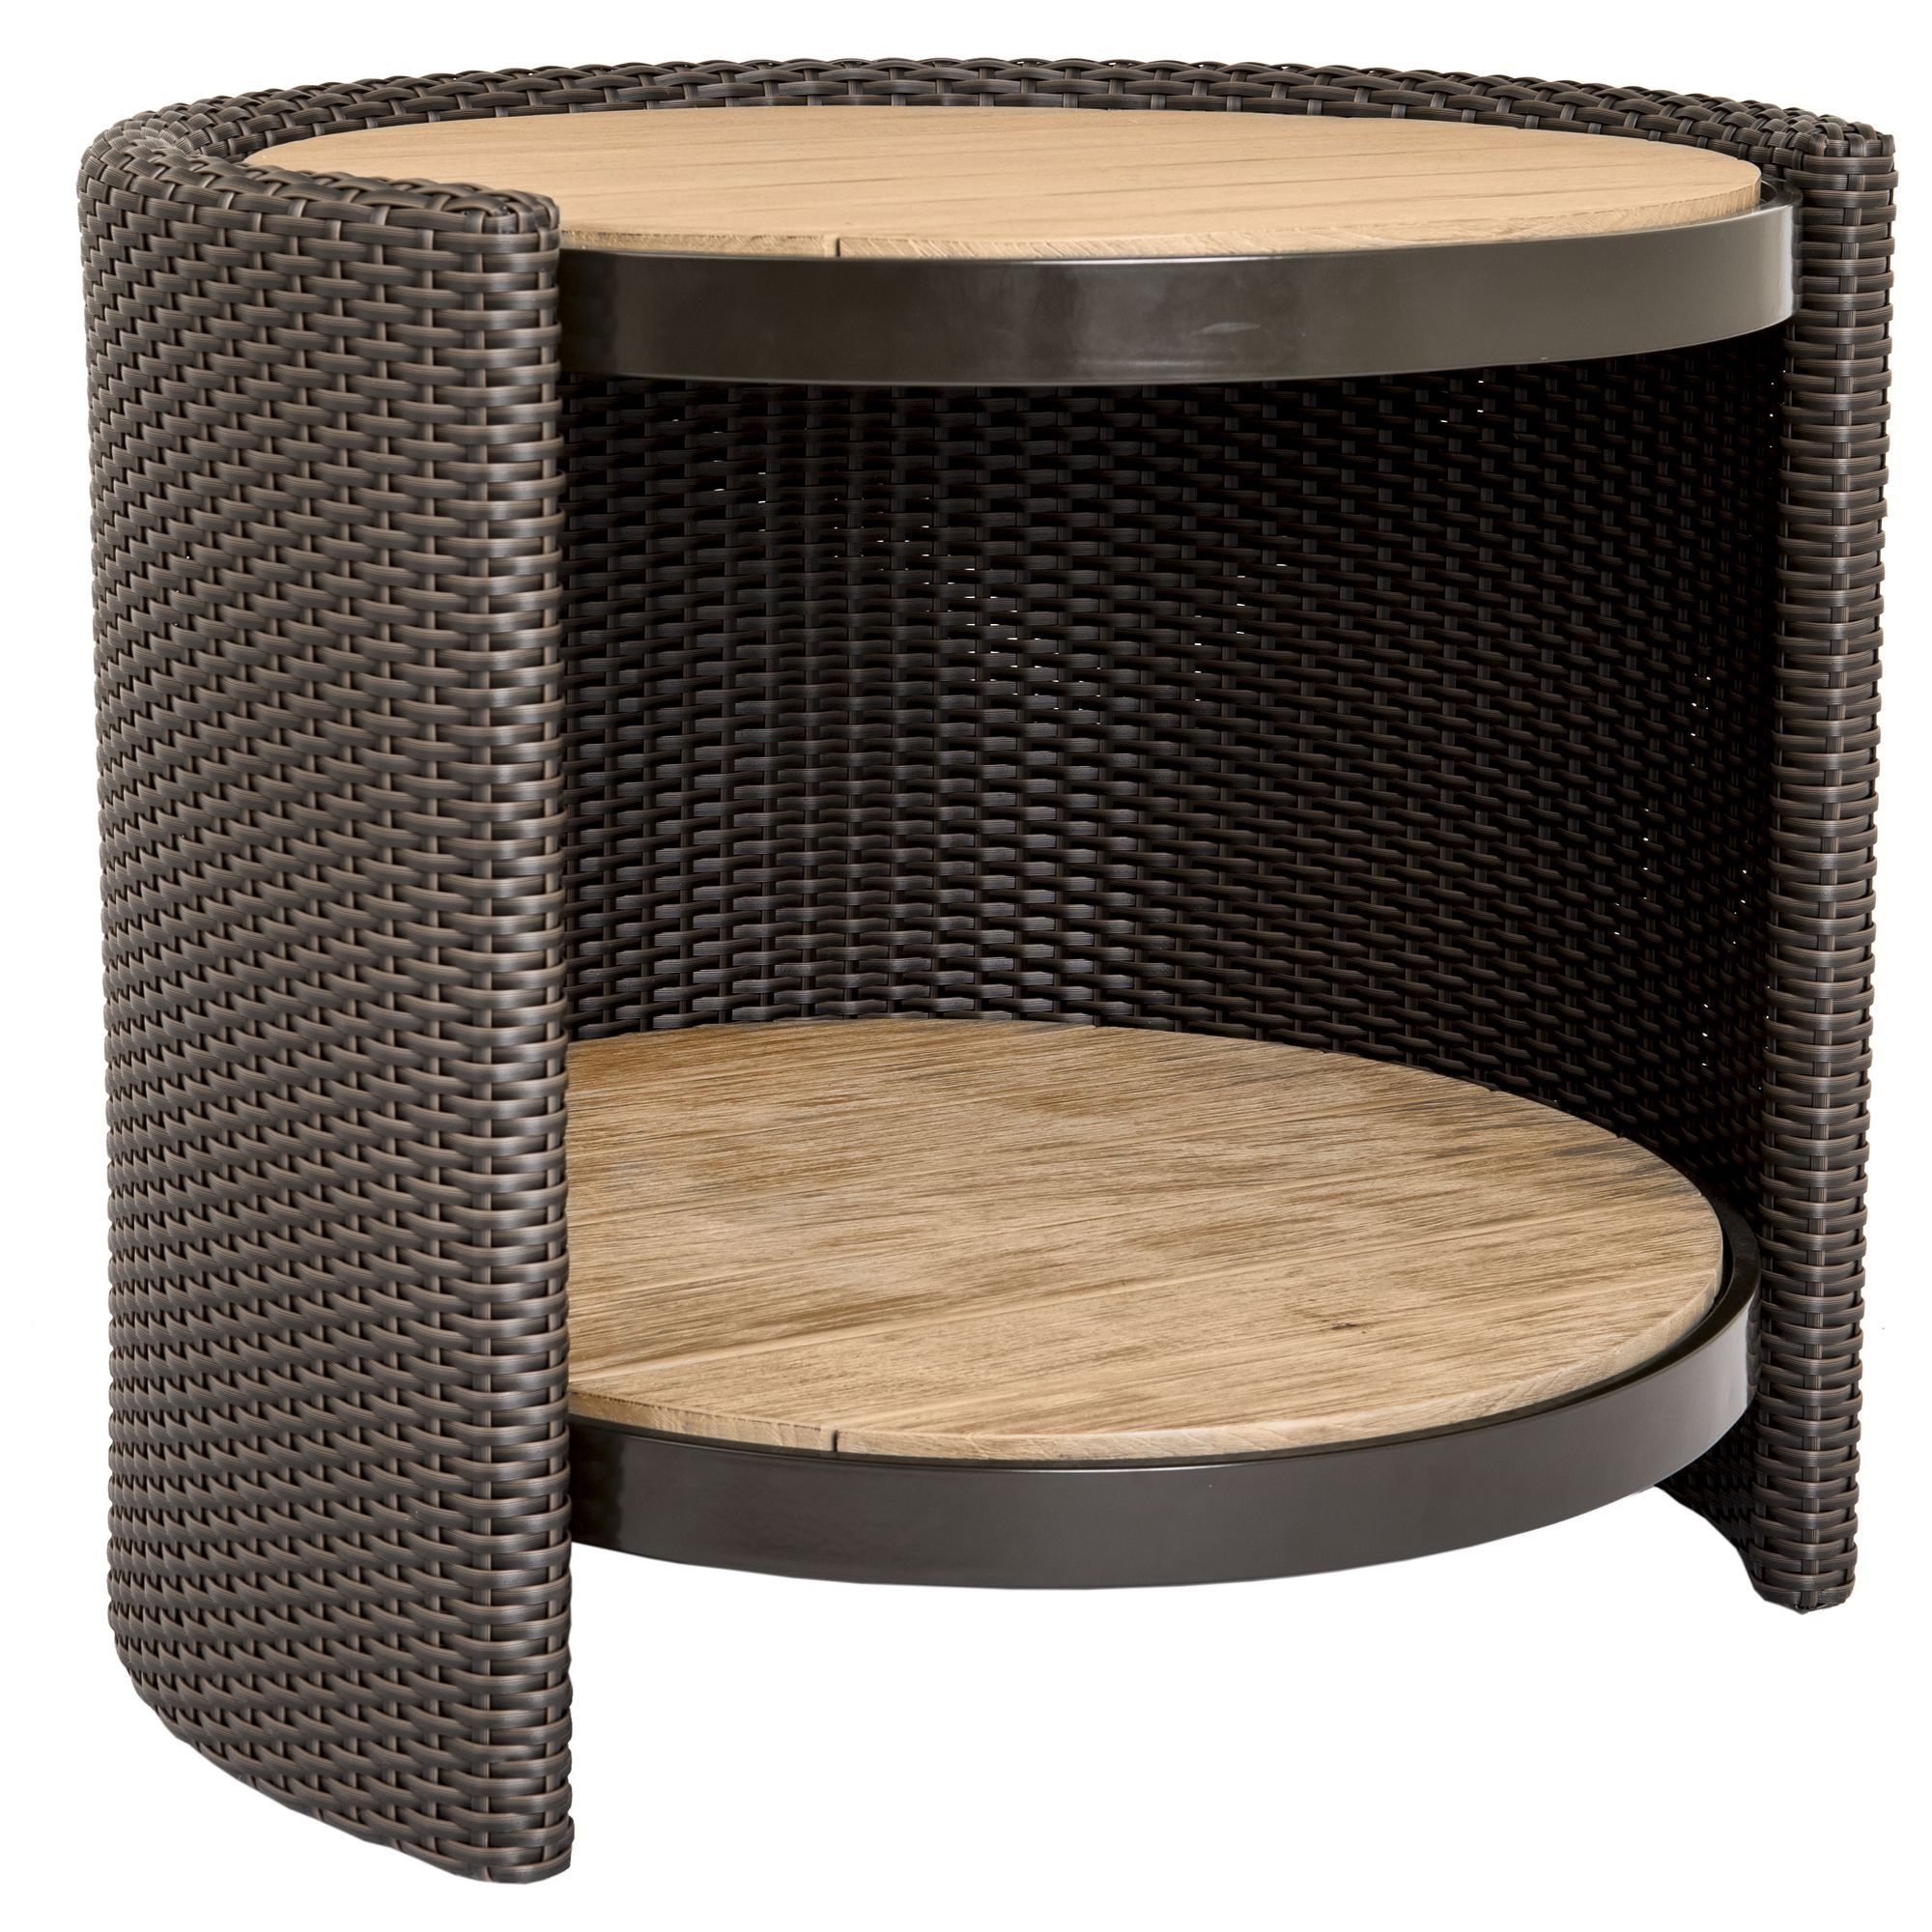 Buy Barbara Barry Outdoor Horizon End Table by McGuire Furniture